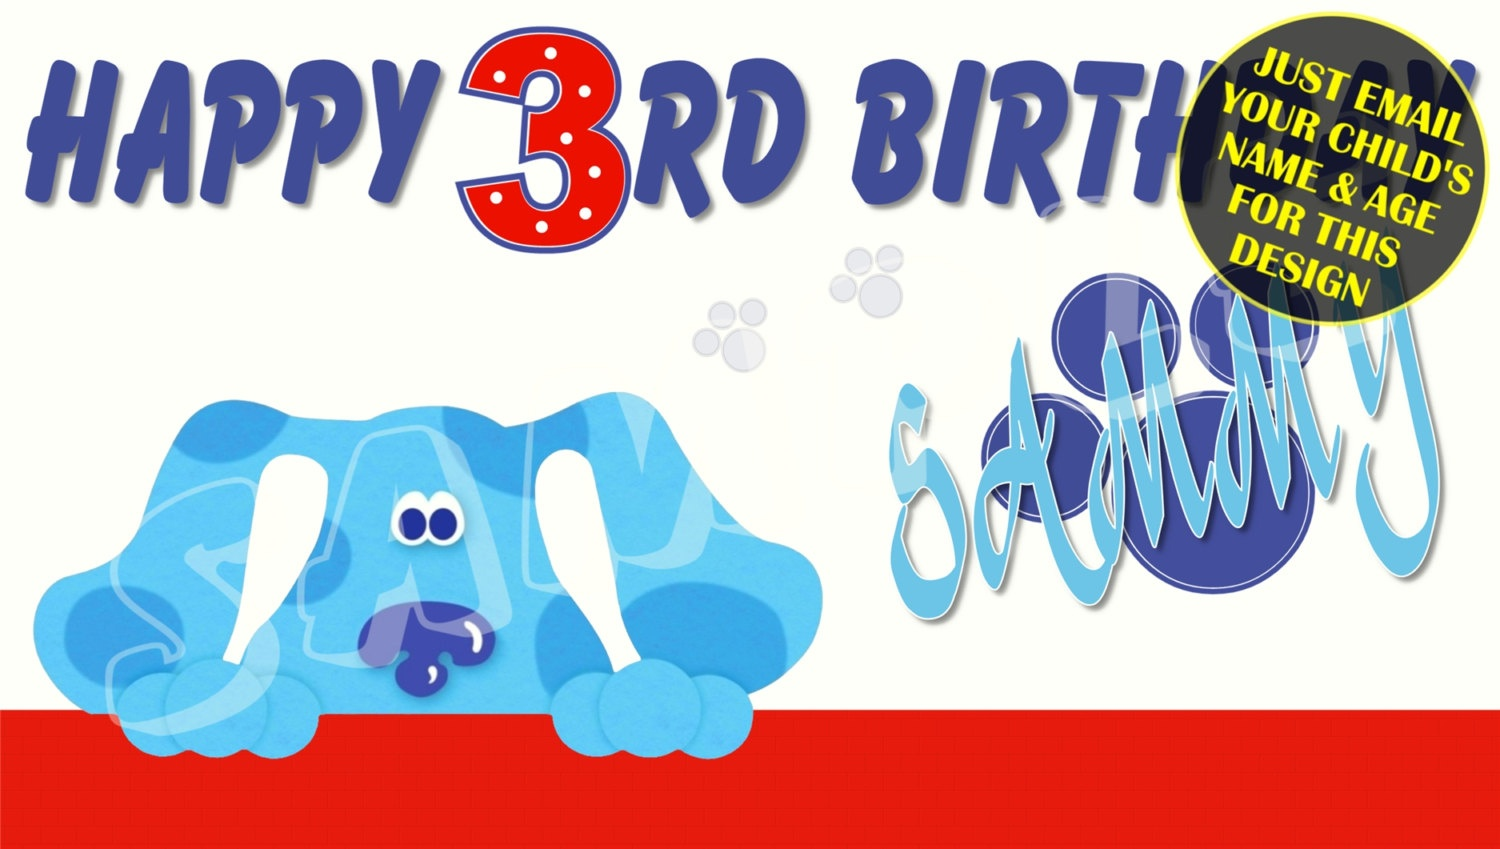 Blues Clues Personalized Birthday Banner With Free Printable | Etsy - Blue's Clues Invitations Free Printable